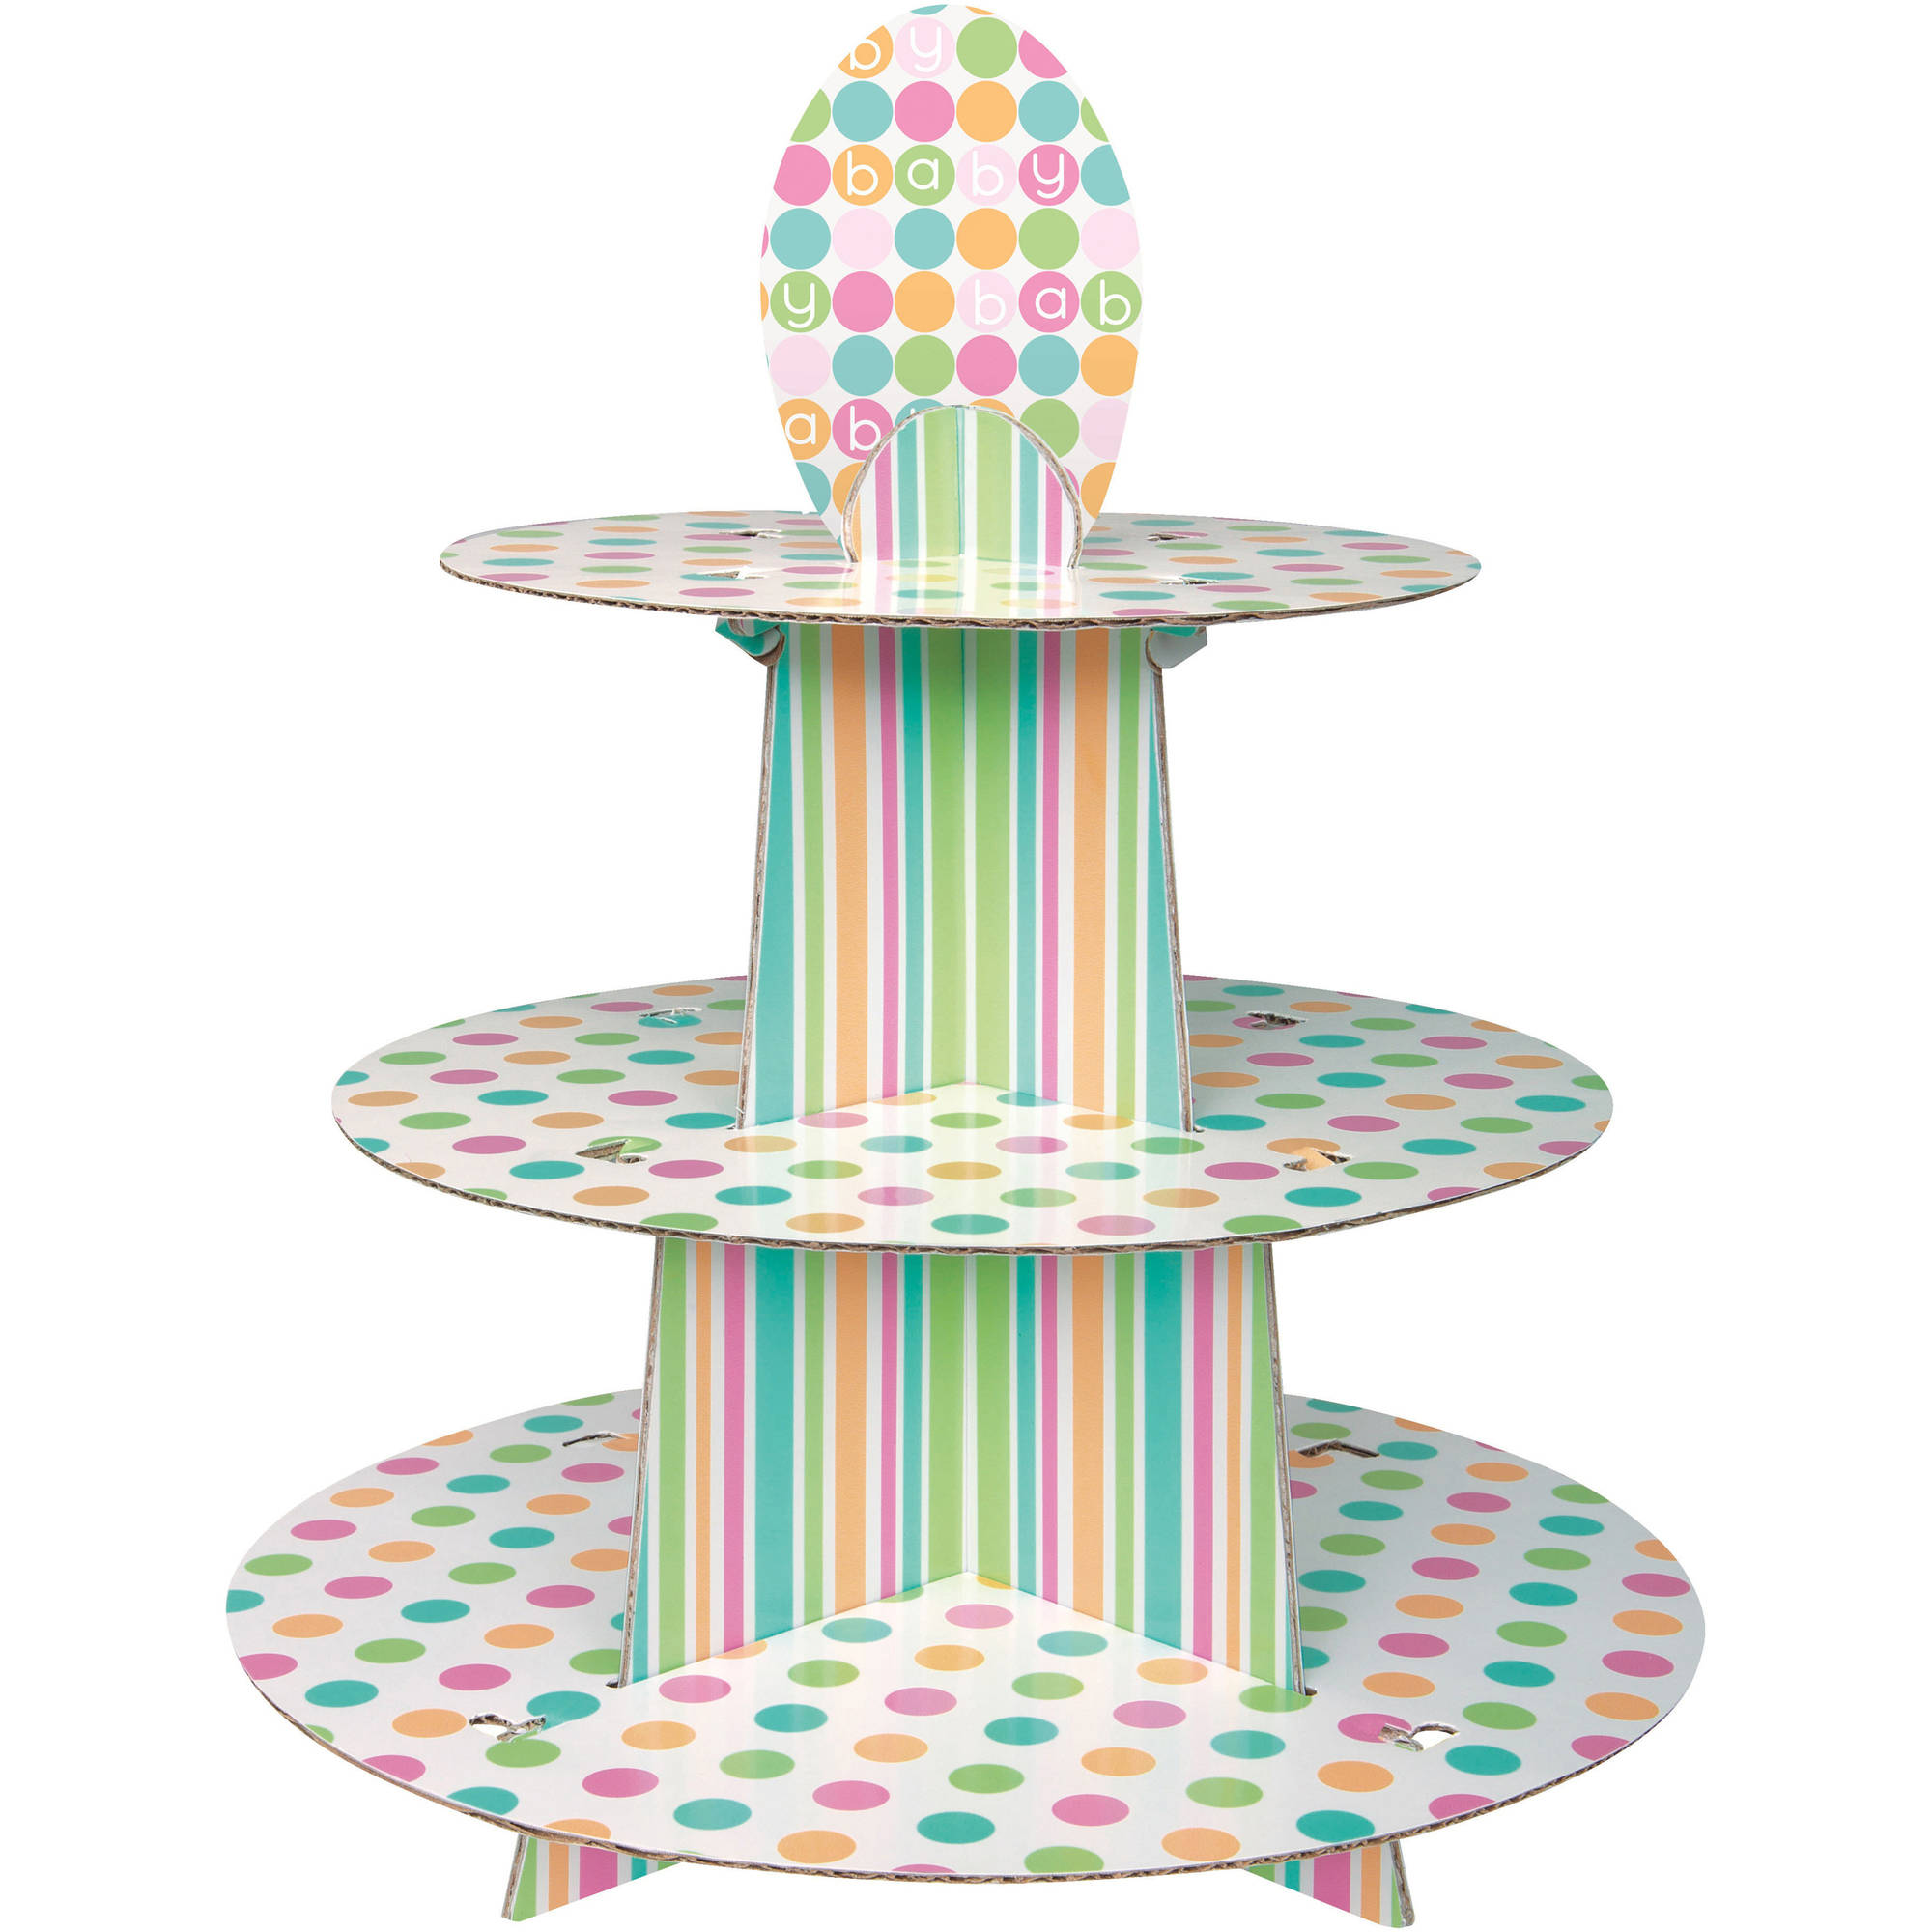 Cardboard Pastel Baby Shower Cupcake Stand, 14 x 12 in, 1ct